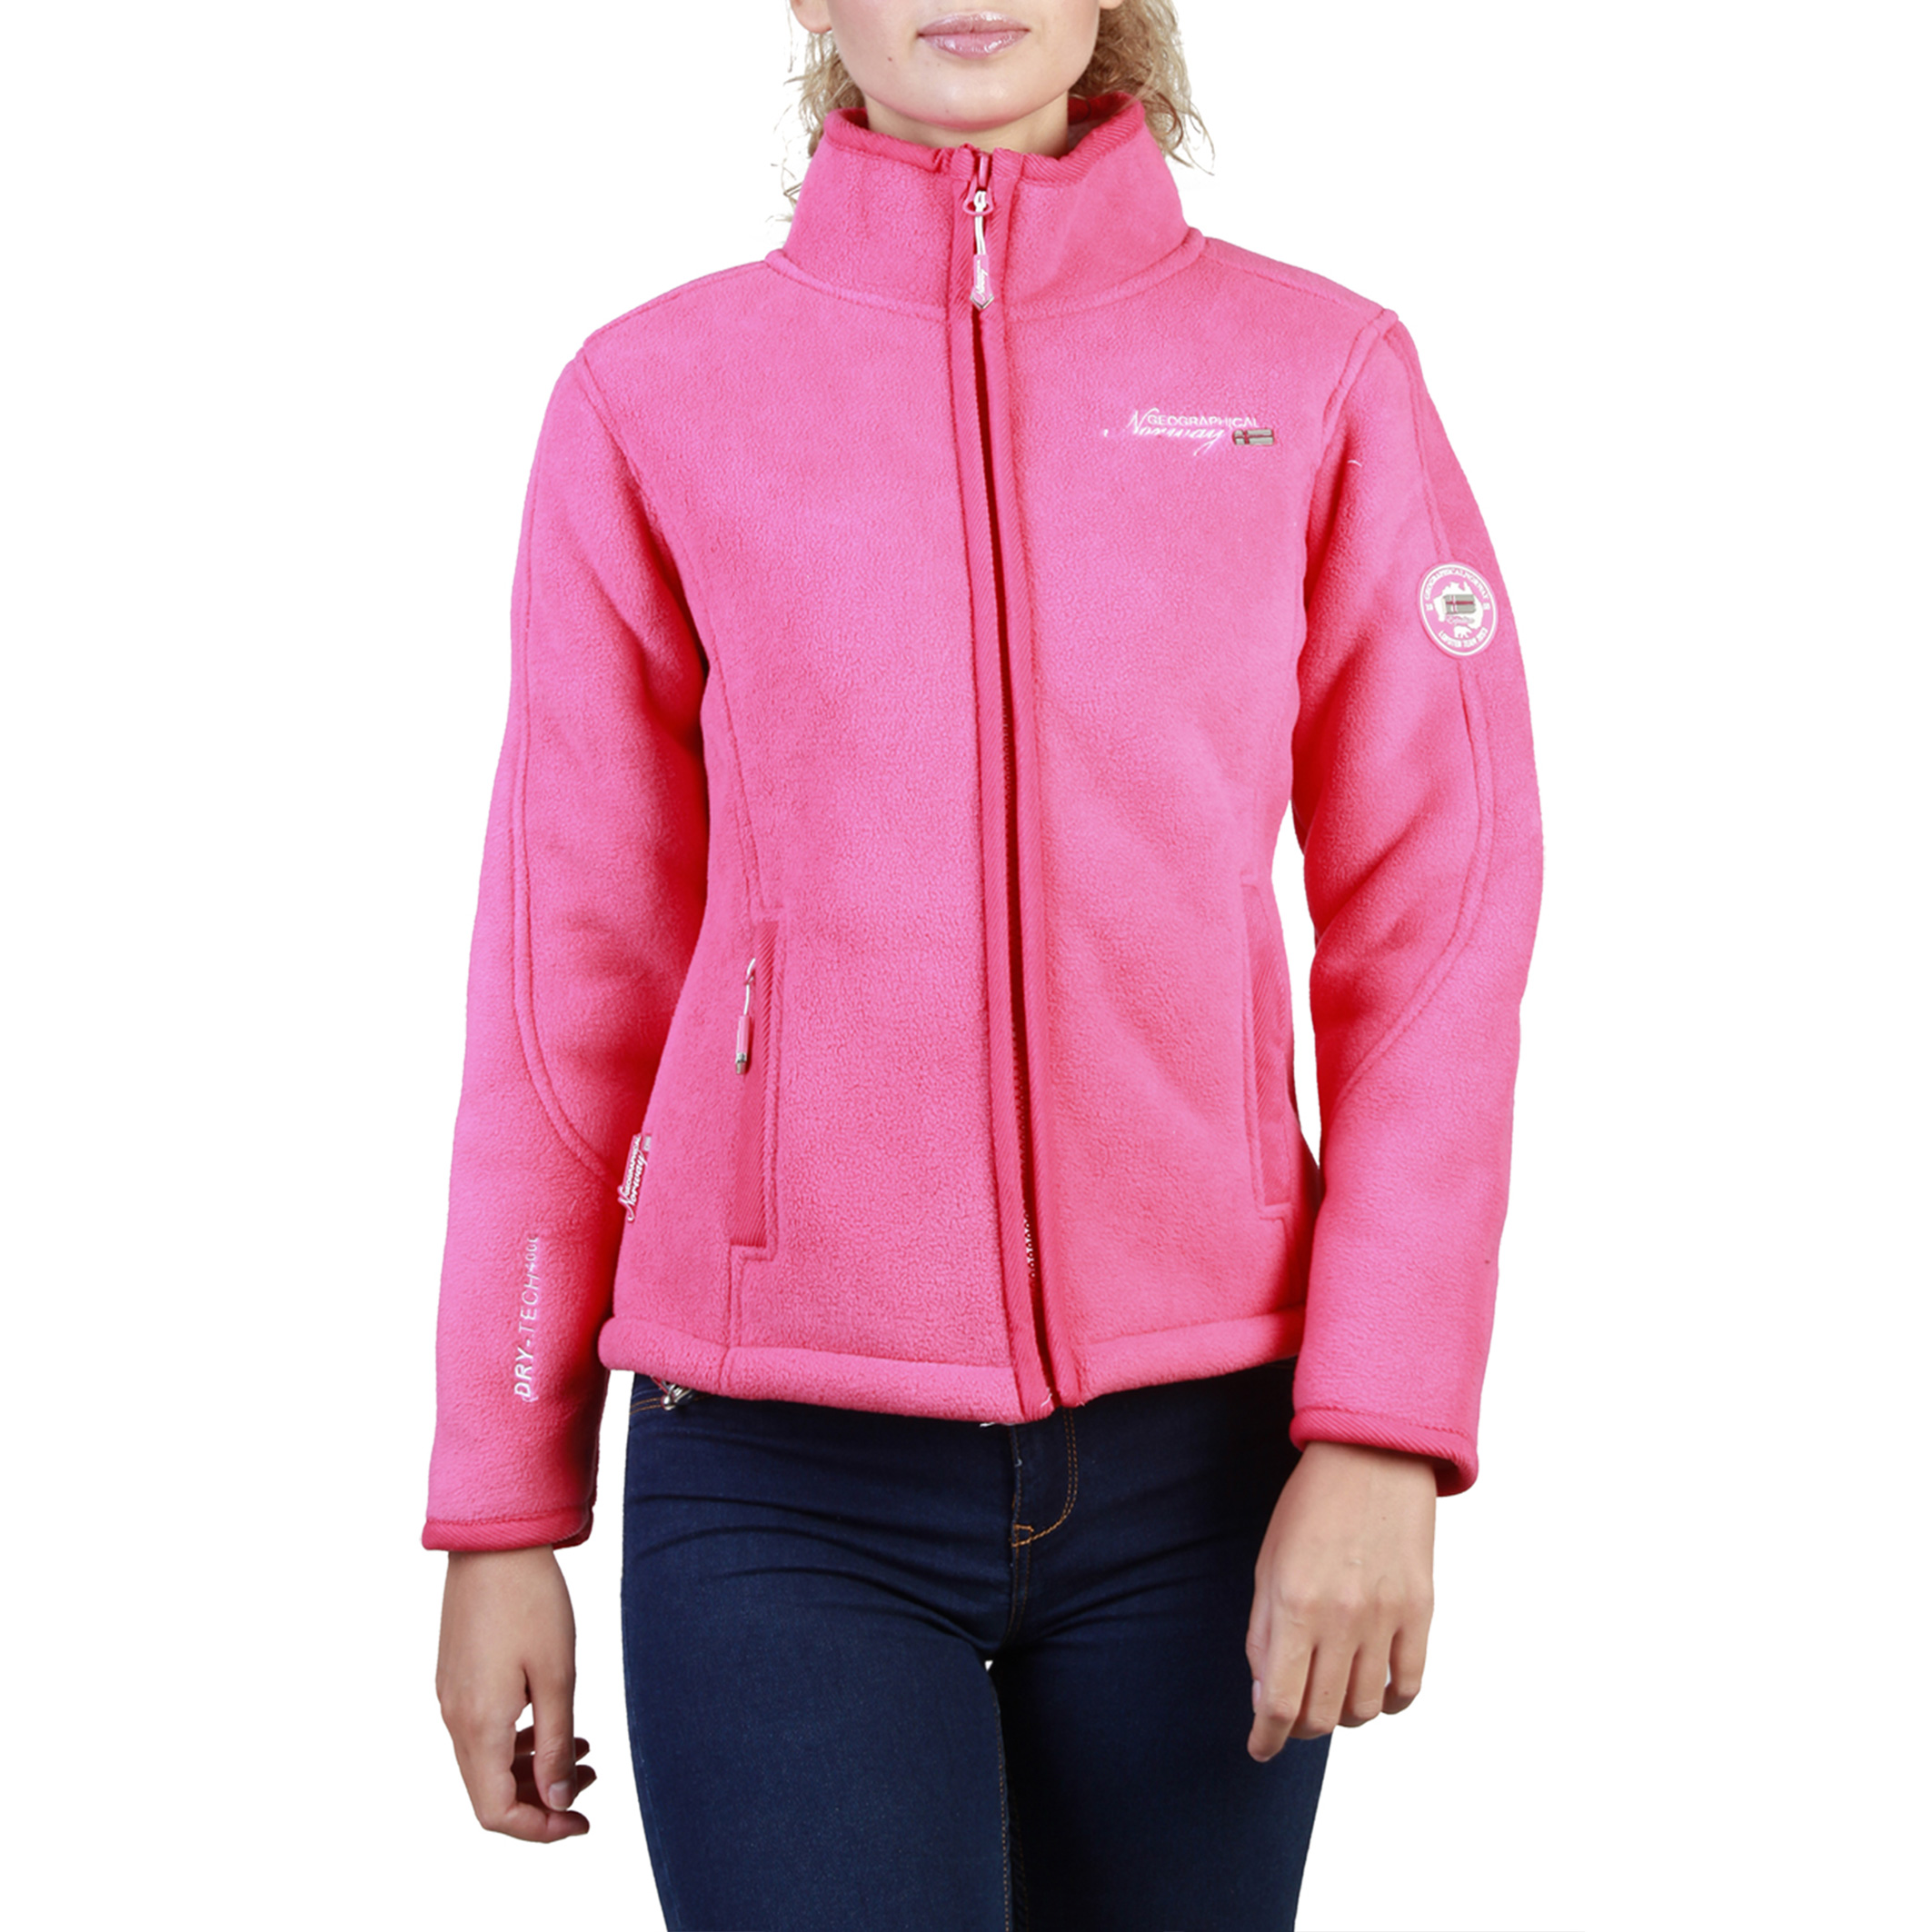 Vestes & blousons  Geographical norway Tapir_woman pink